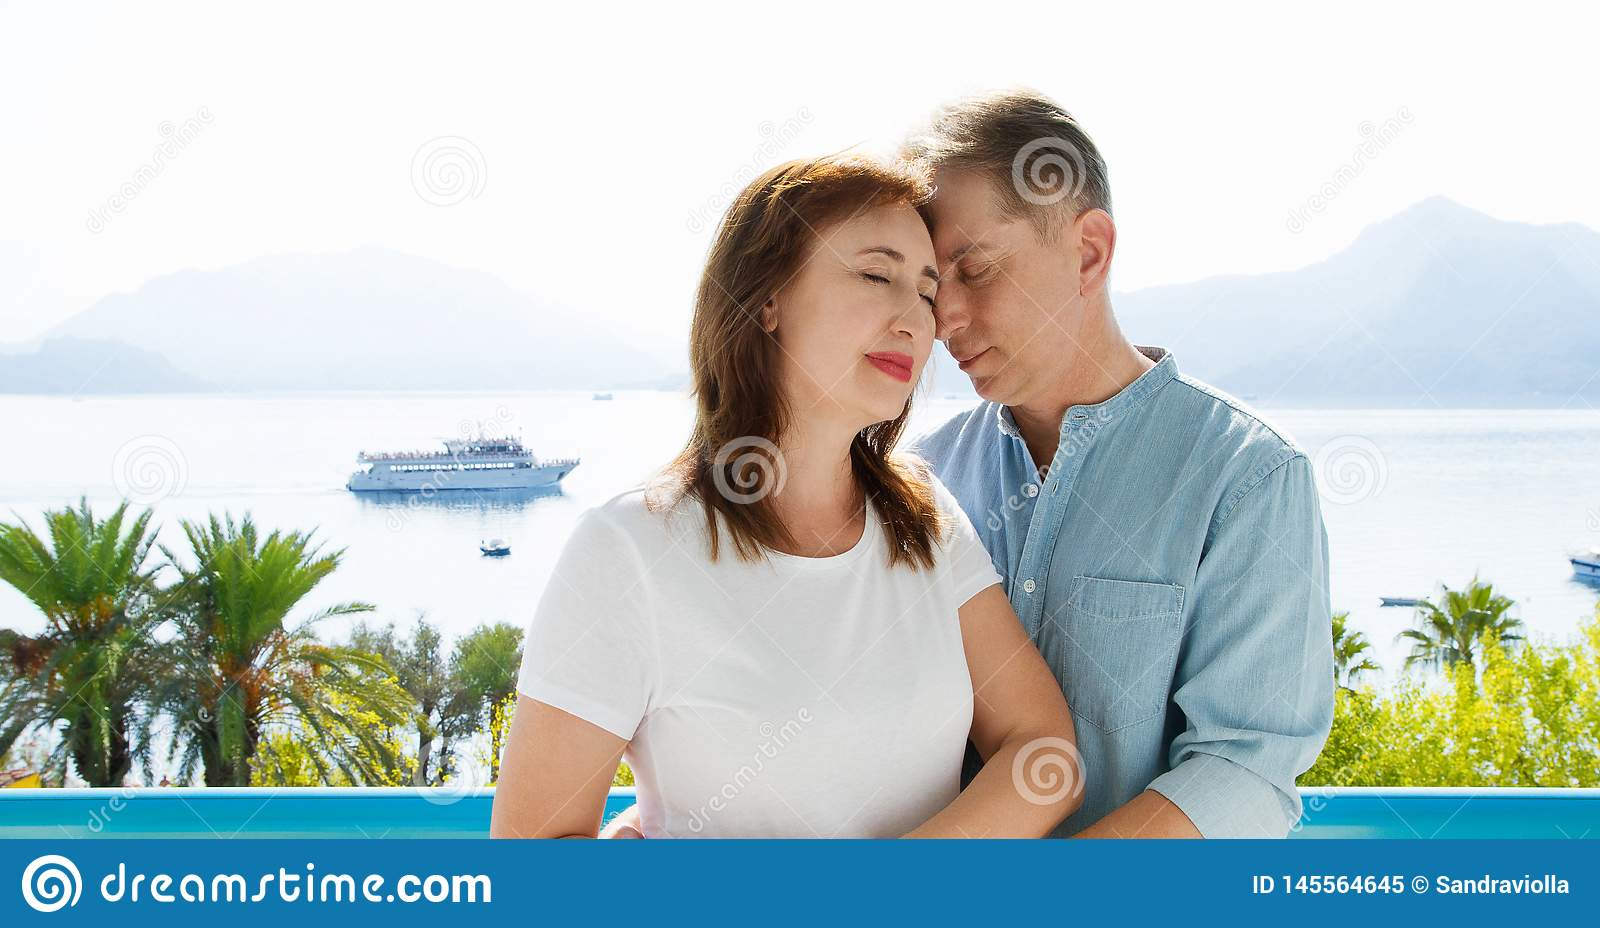 Middle age family couple on vacation resort on sea background. Summer people travel to tropical beach. Summertime leisure